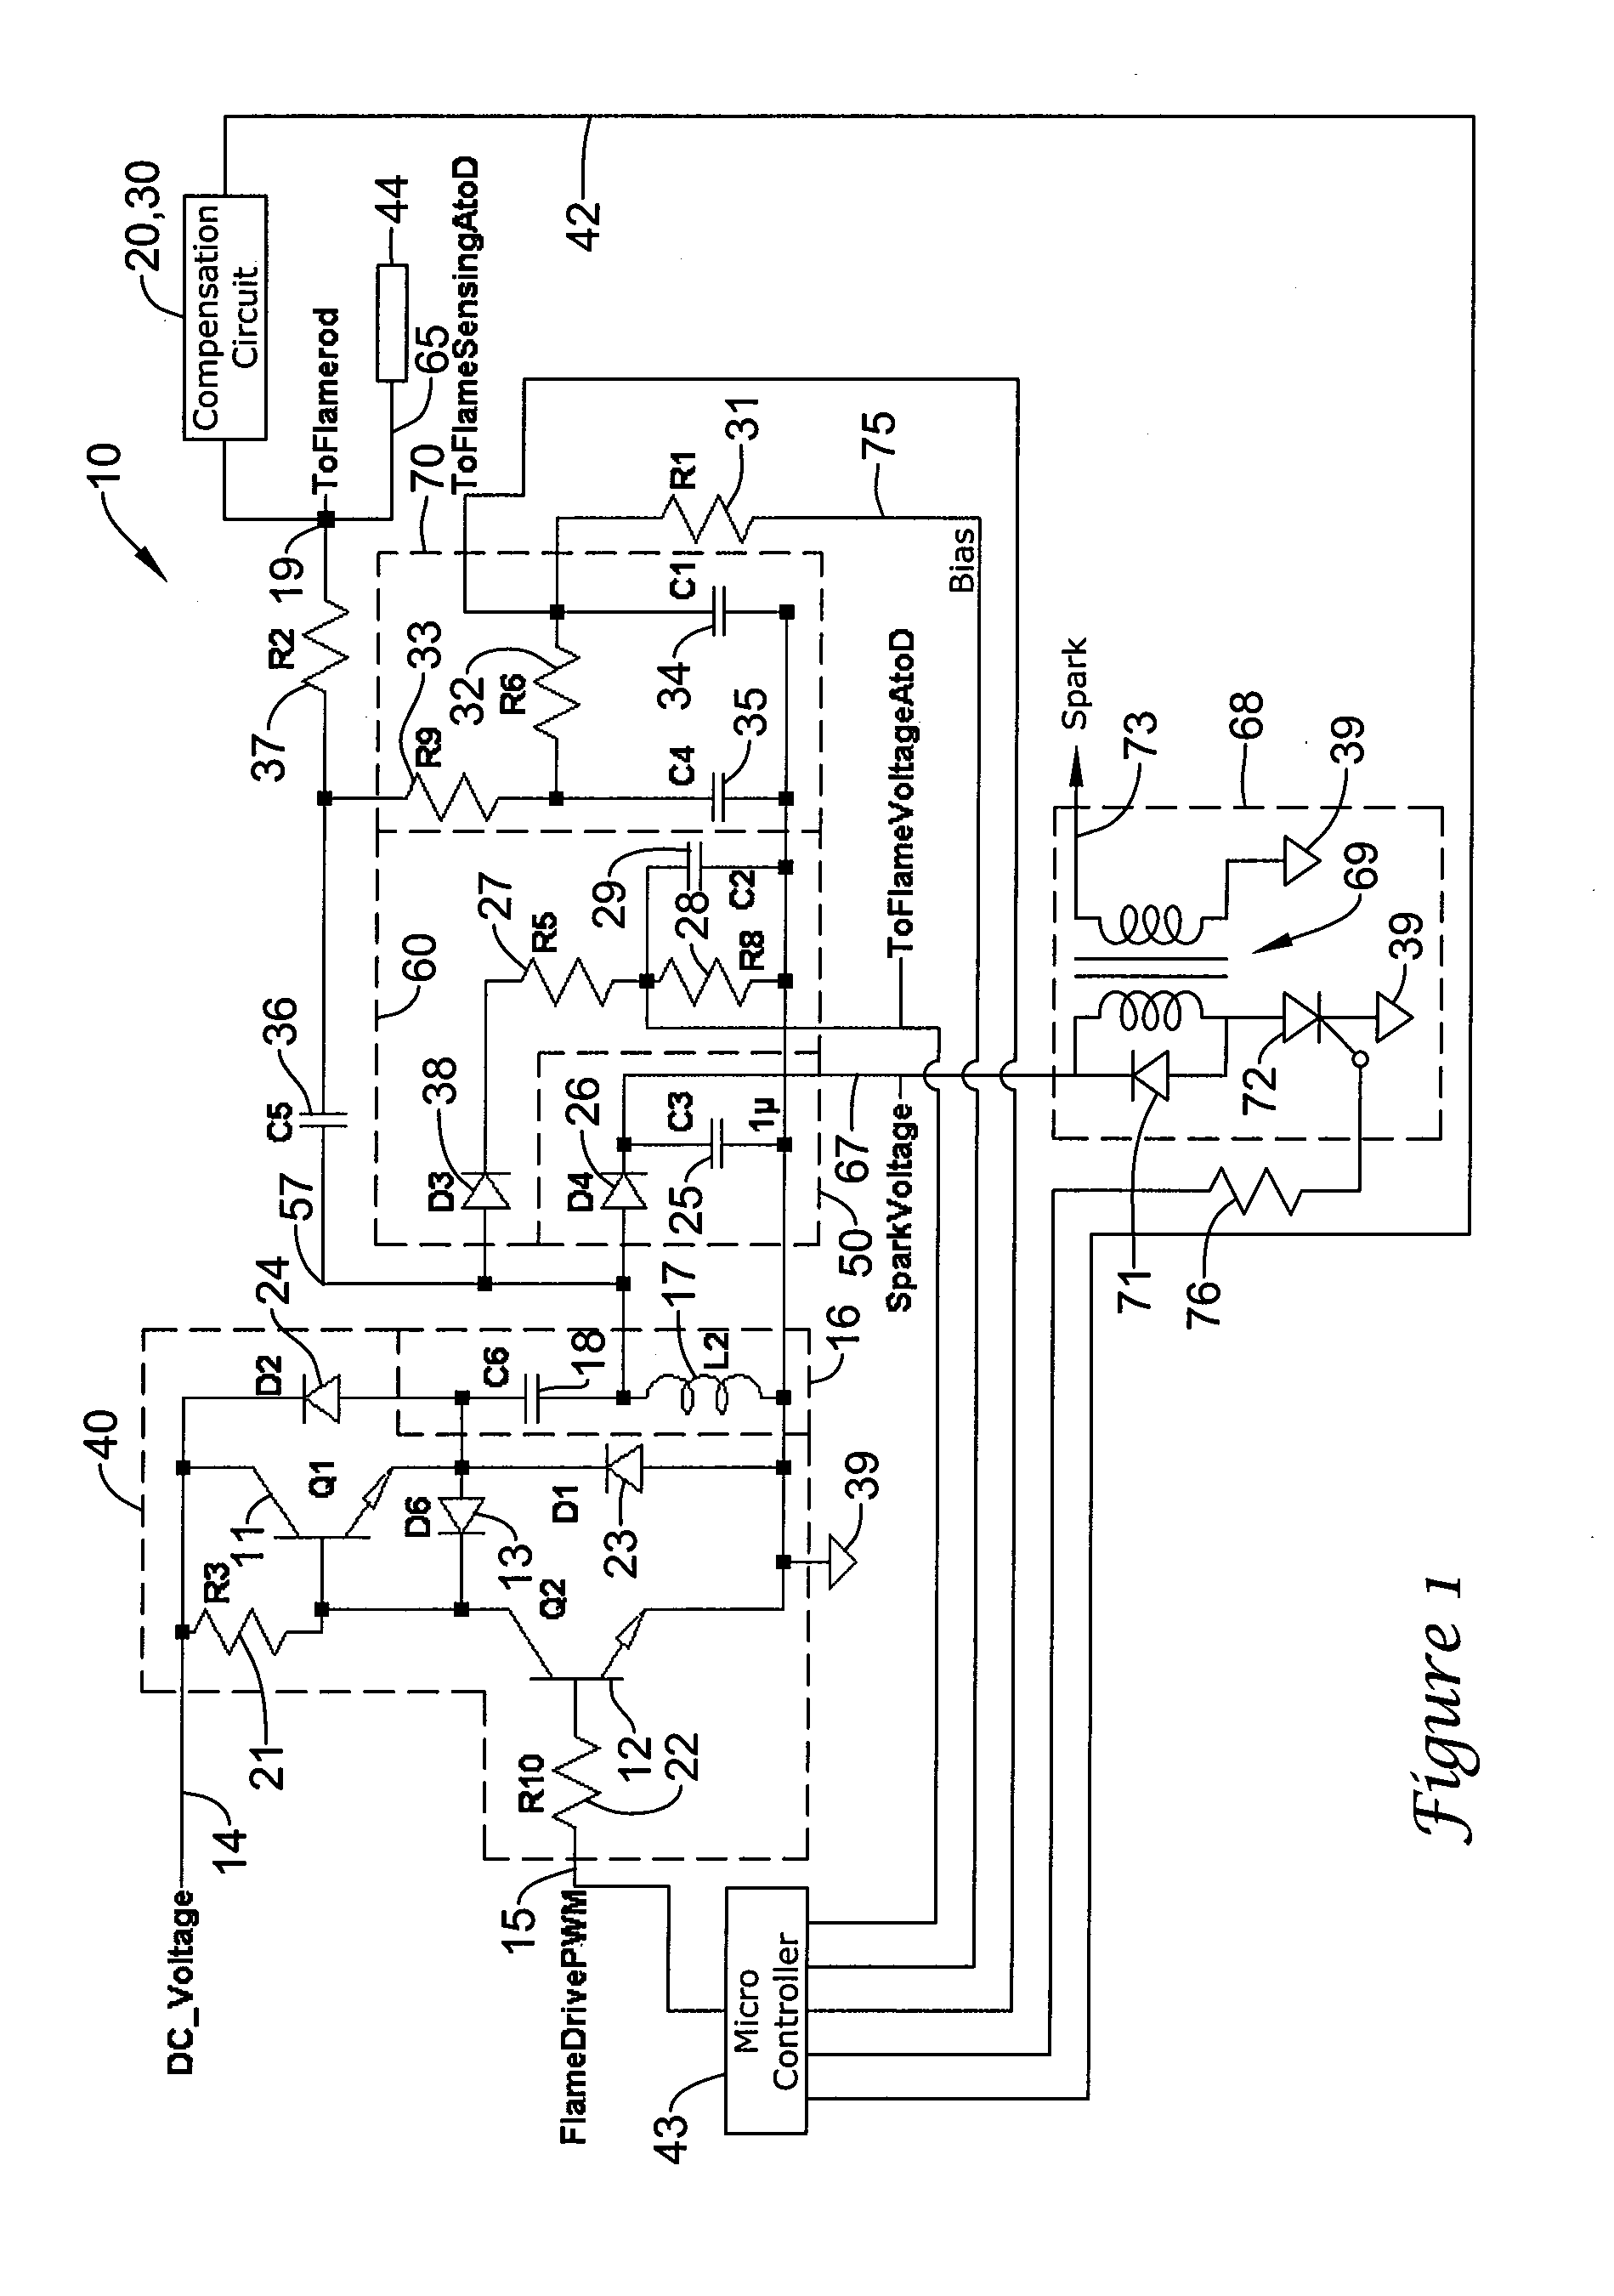 patent us8300381 - low cost high speed spark voltage and flame drive signal generator